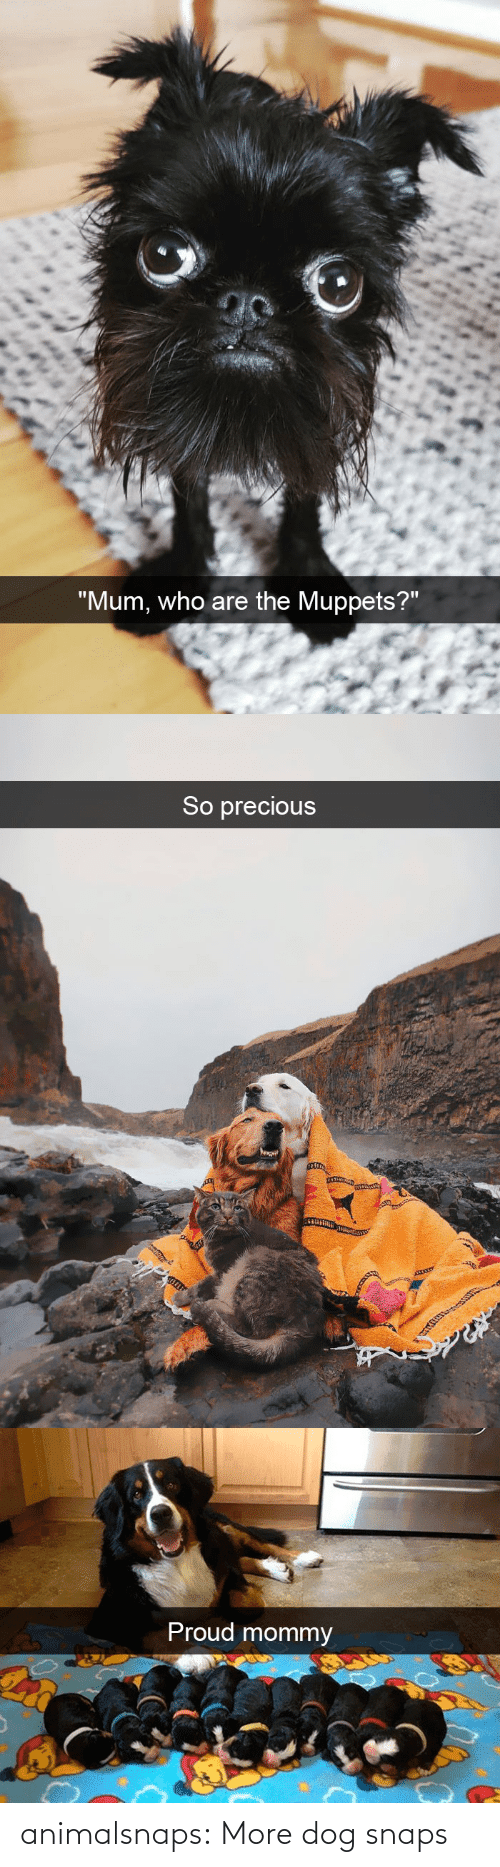 snaps: animalsnaps:  More dog snaps